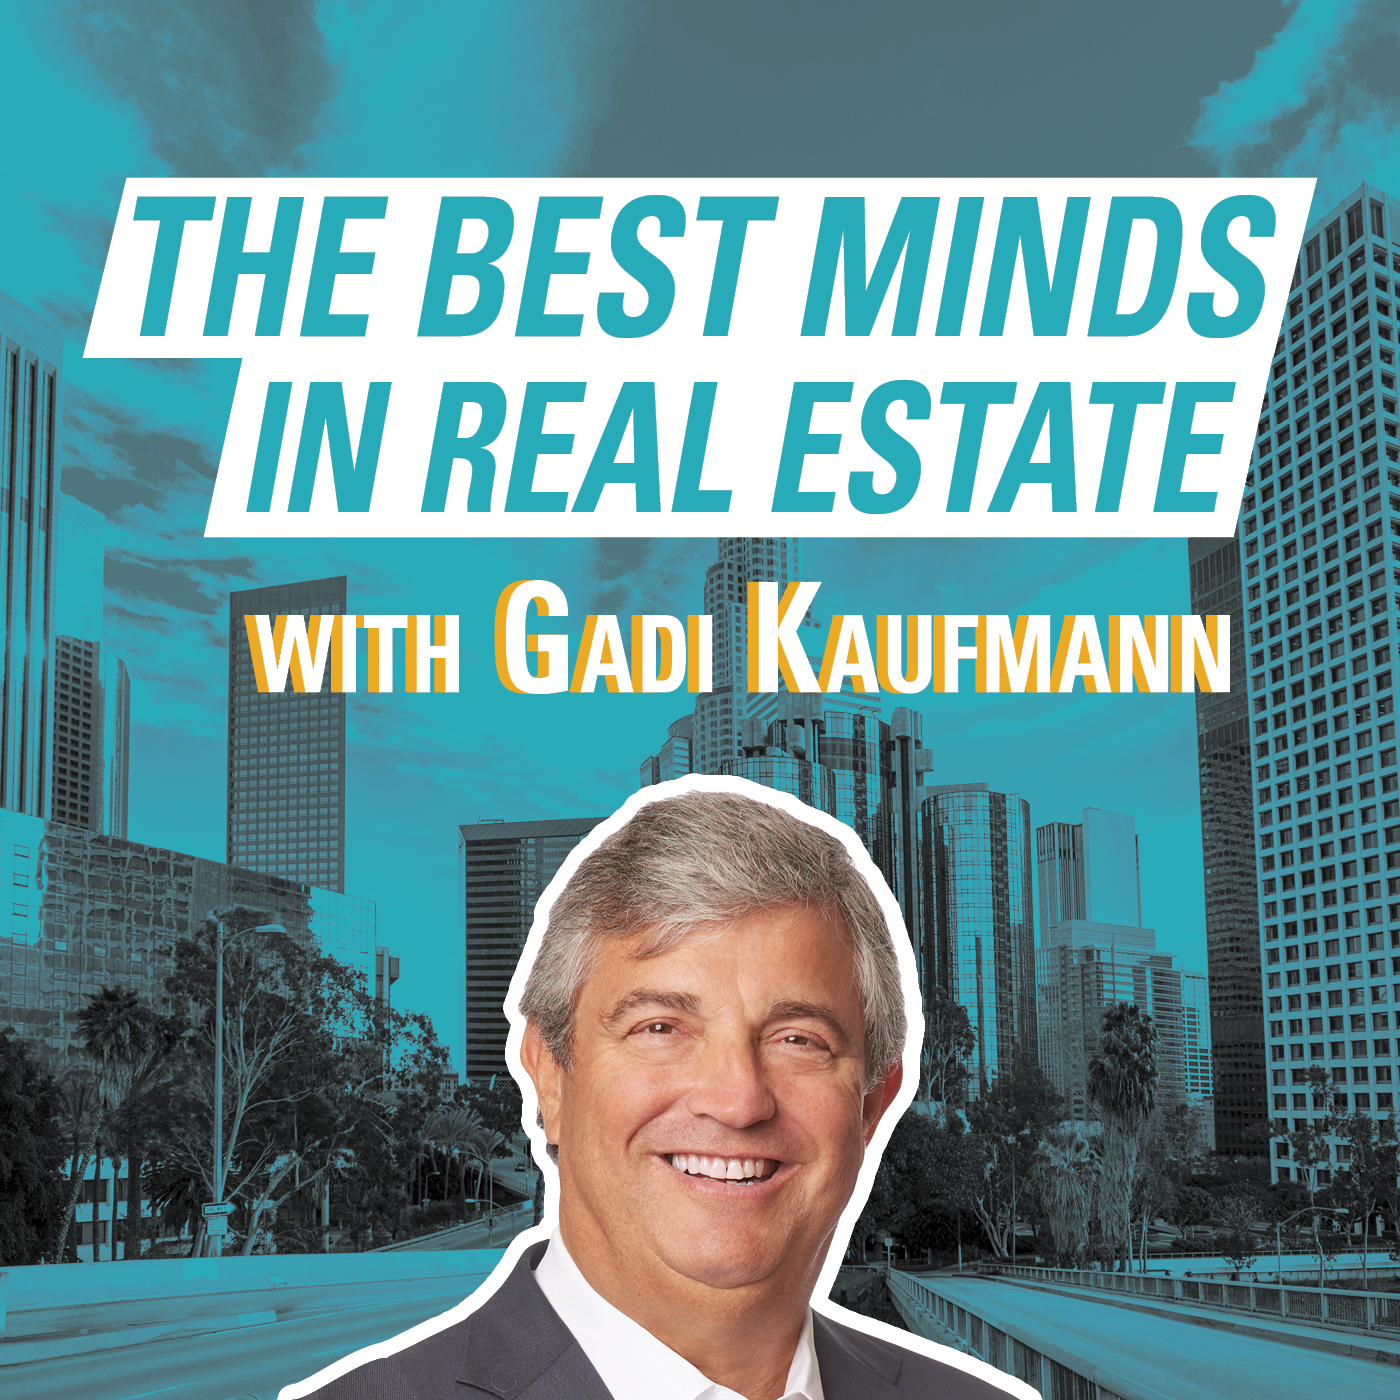 The Best Minds in Real Estate with Gadi Kaufmann